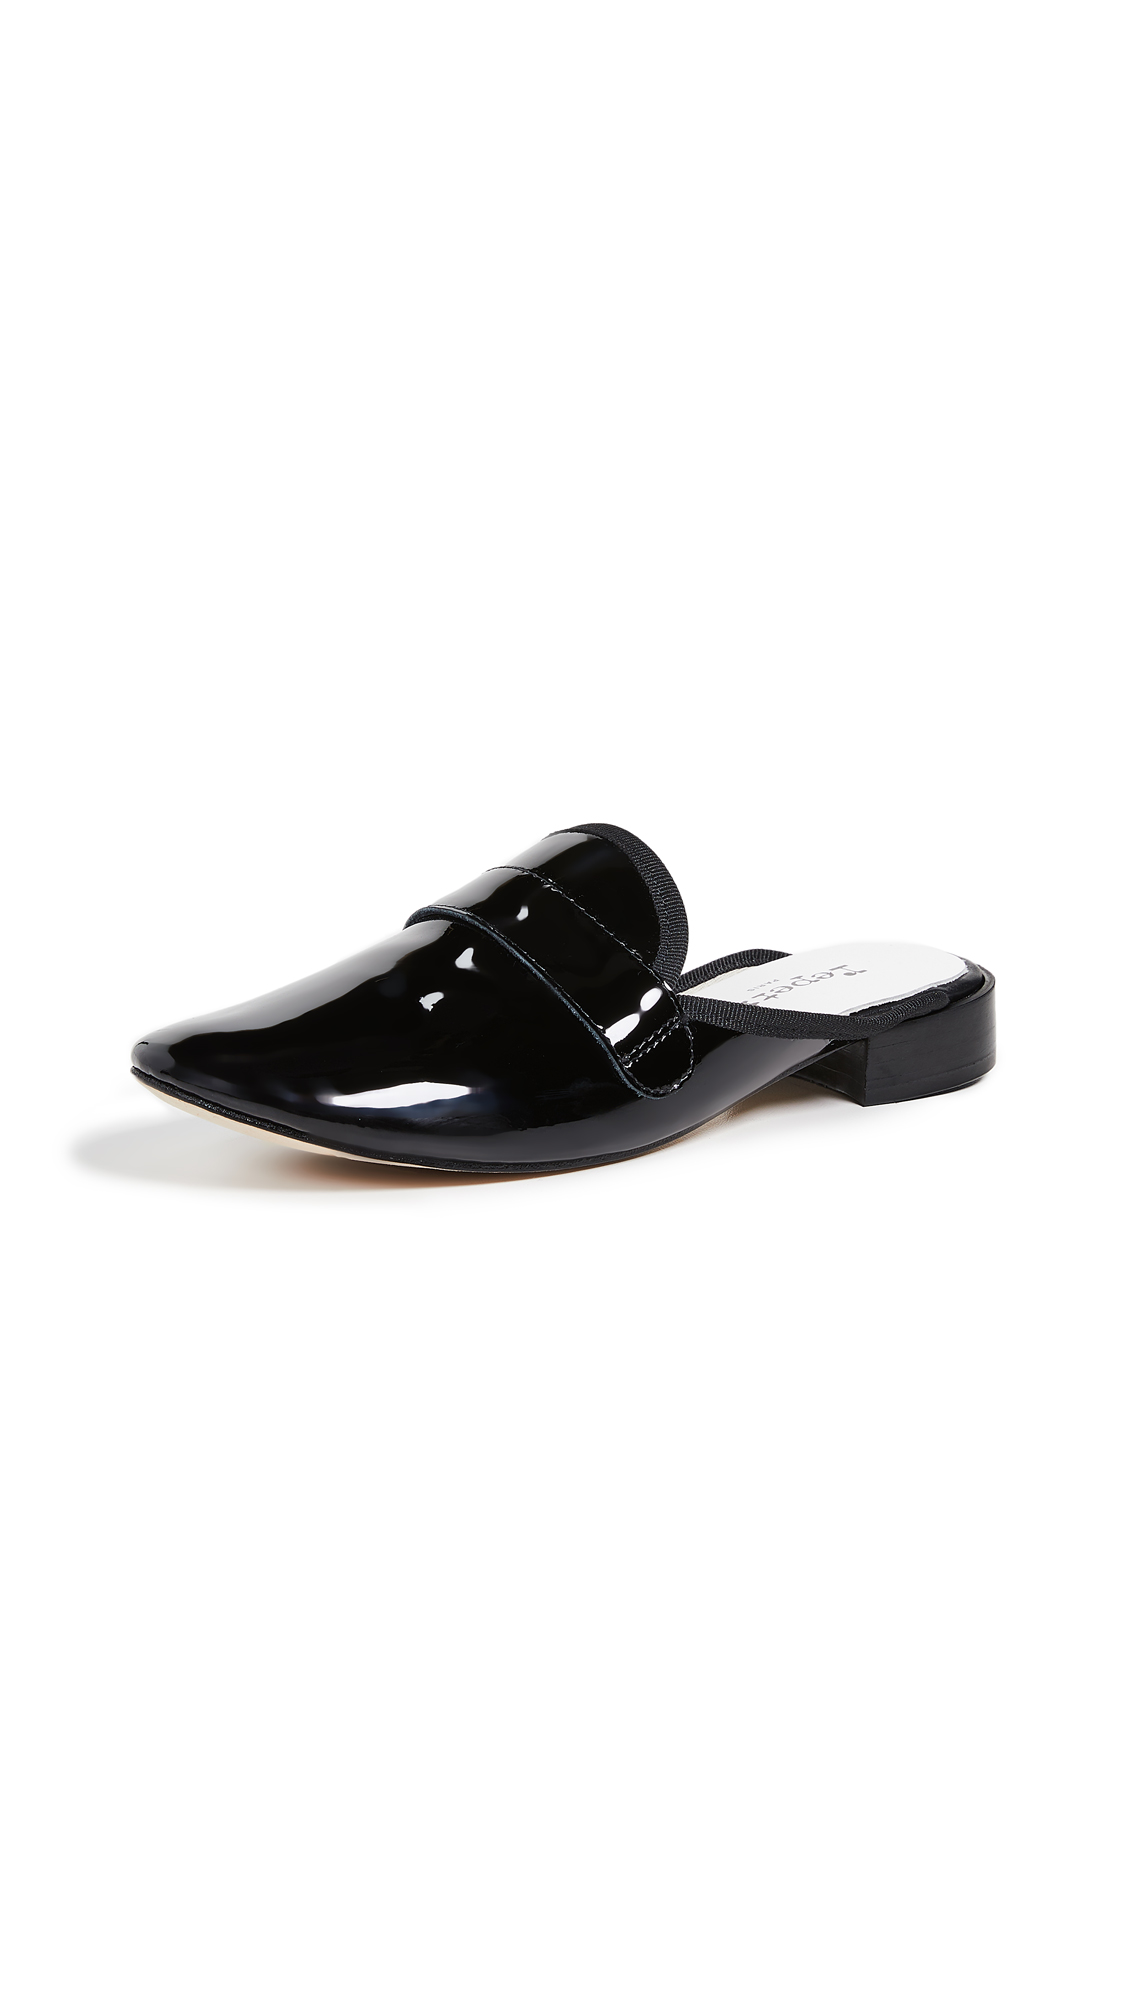 Repetto LOLY MULES